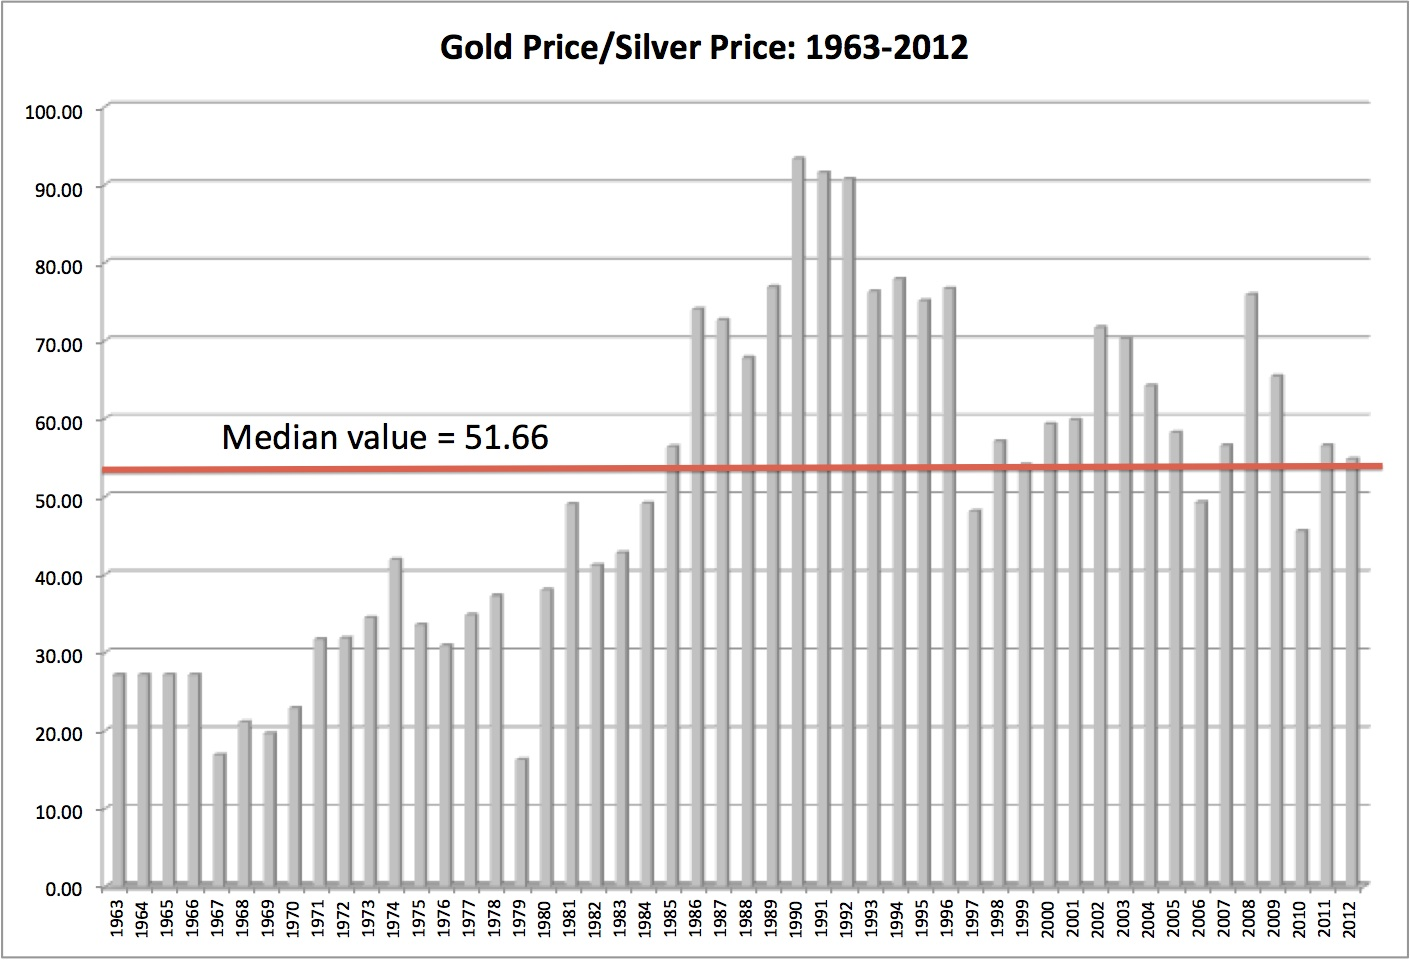 Musings on markets the golden rule thoughts on gold as an investment the median value of 5122 over the 1963 2012 period would suggest that gold is not over priced relative to silver in fact silver has dropped in price buycottarizona Images